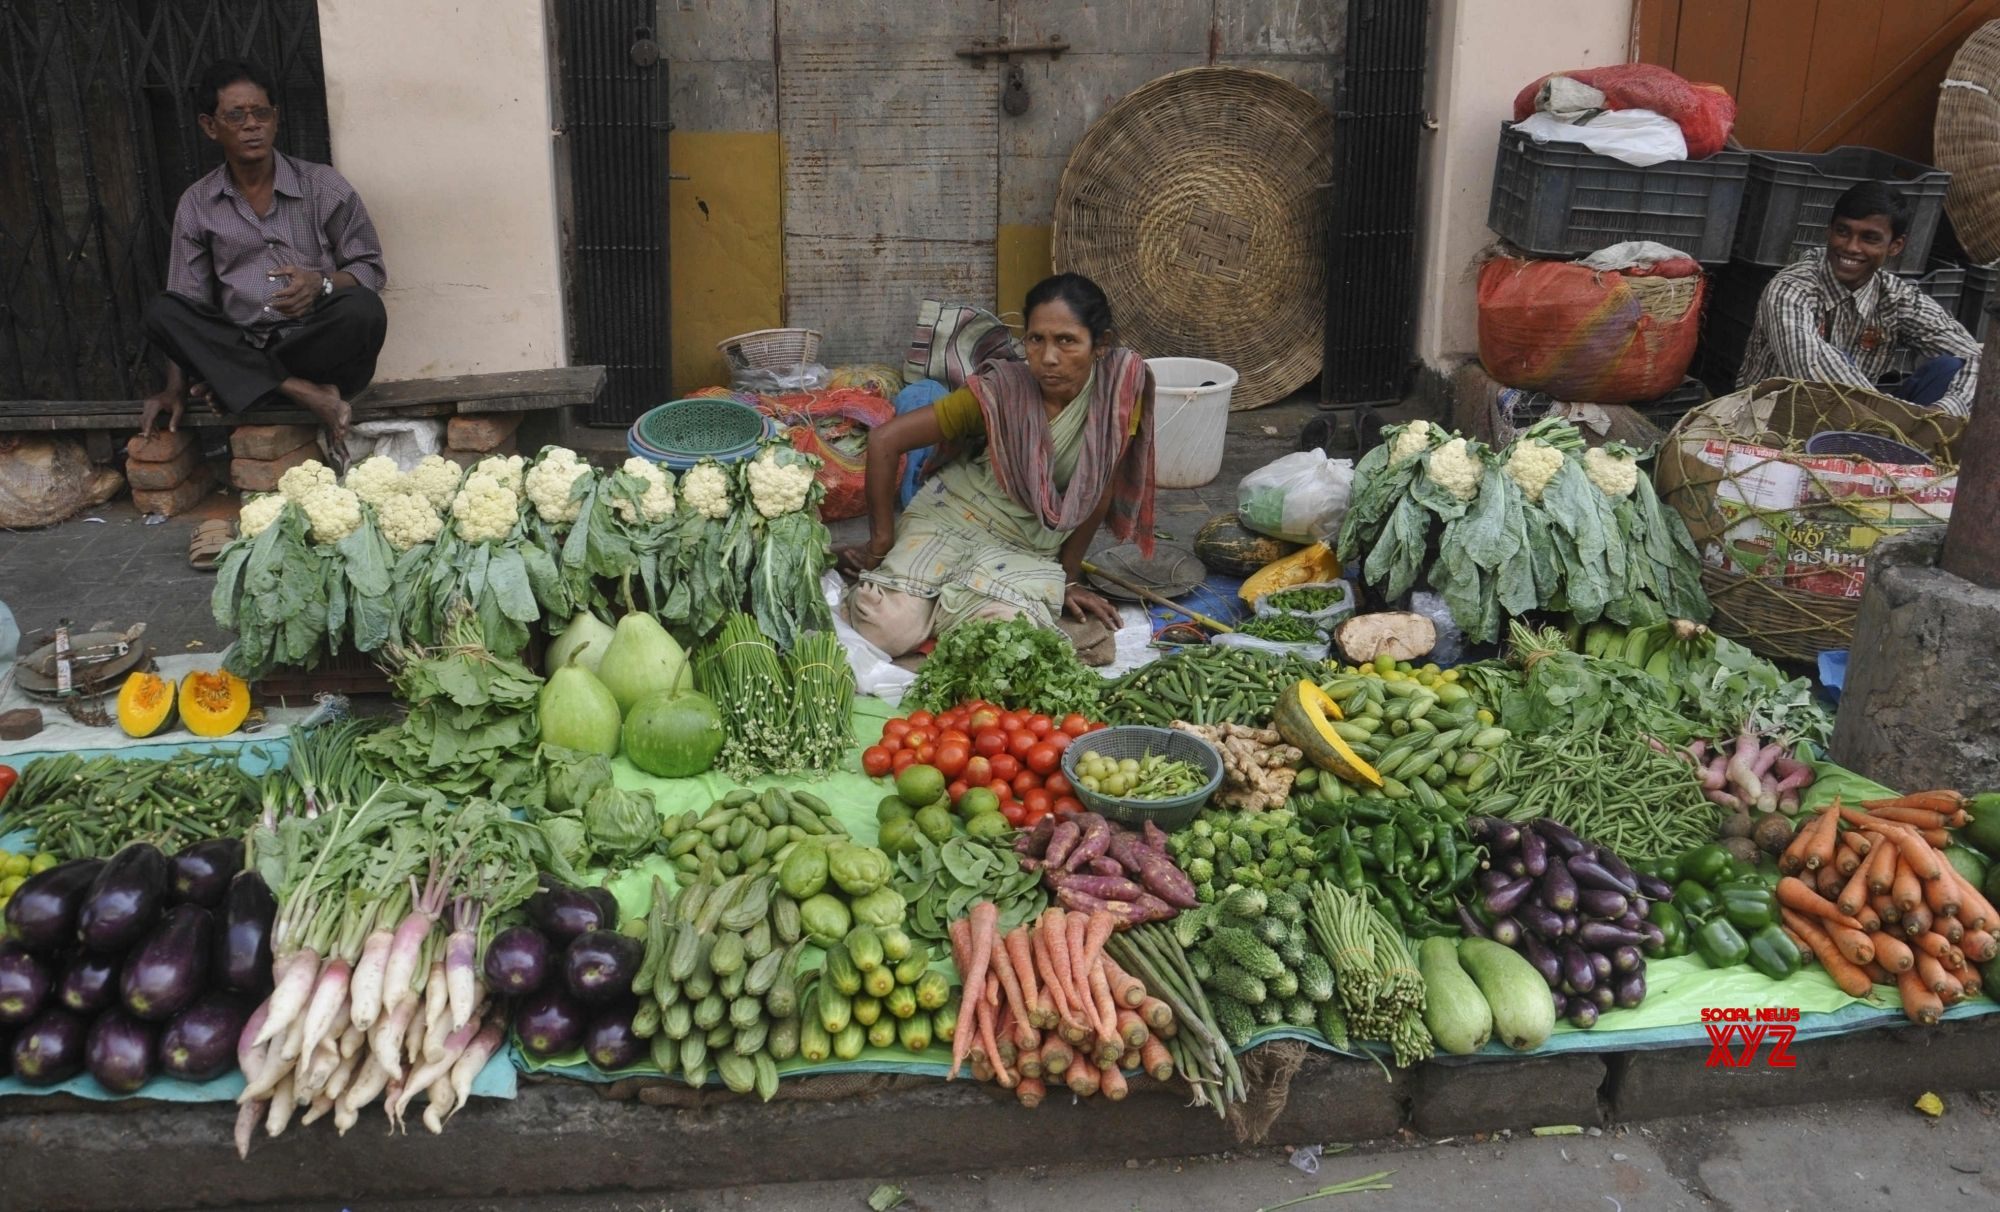 India's January wholesale inflation eases to 2.76%